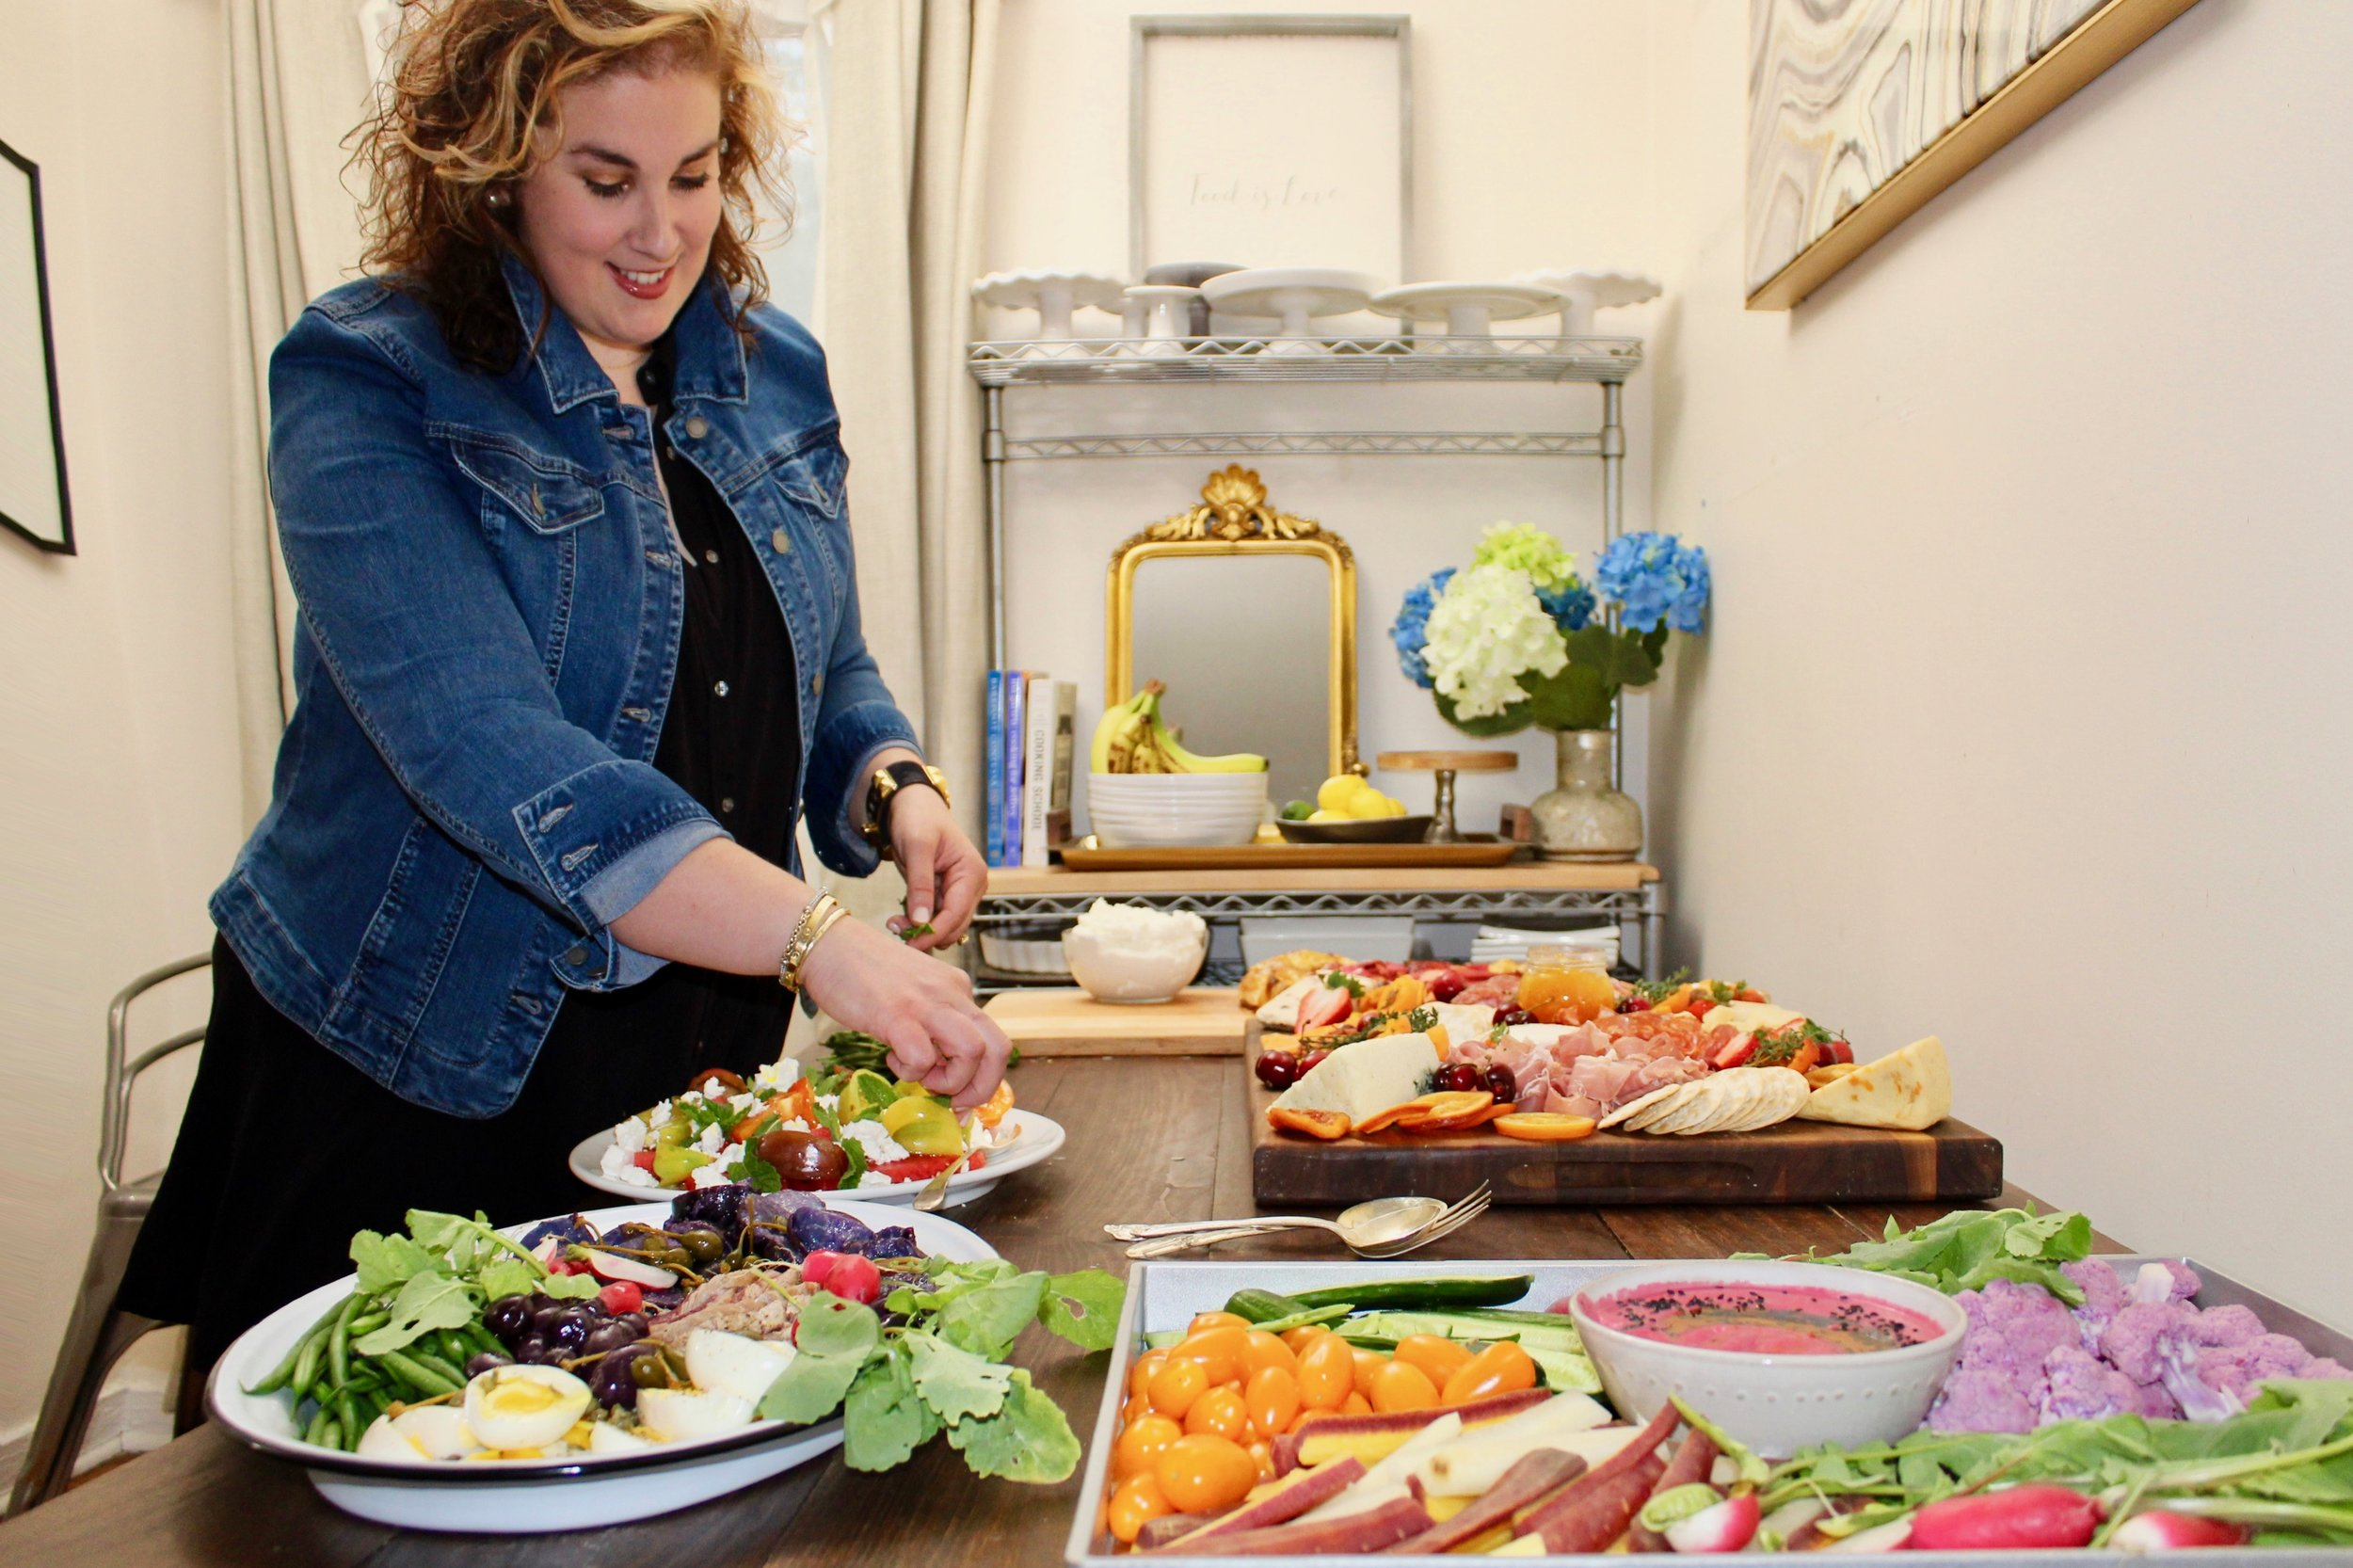 Personal chef Nicole Uliano putting the finishing touches on a spread. Her presentations' bold contrasting colors have eye appeal, and fresh ingredients and flavor combinations take care of the rest.